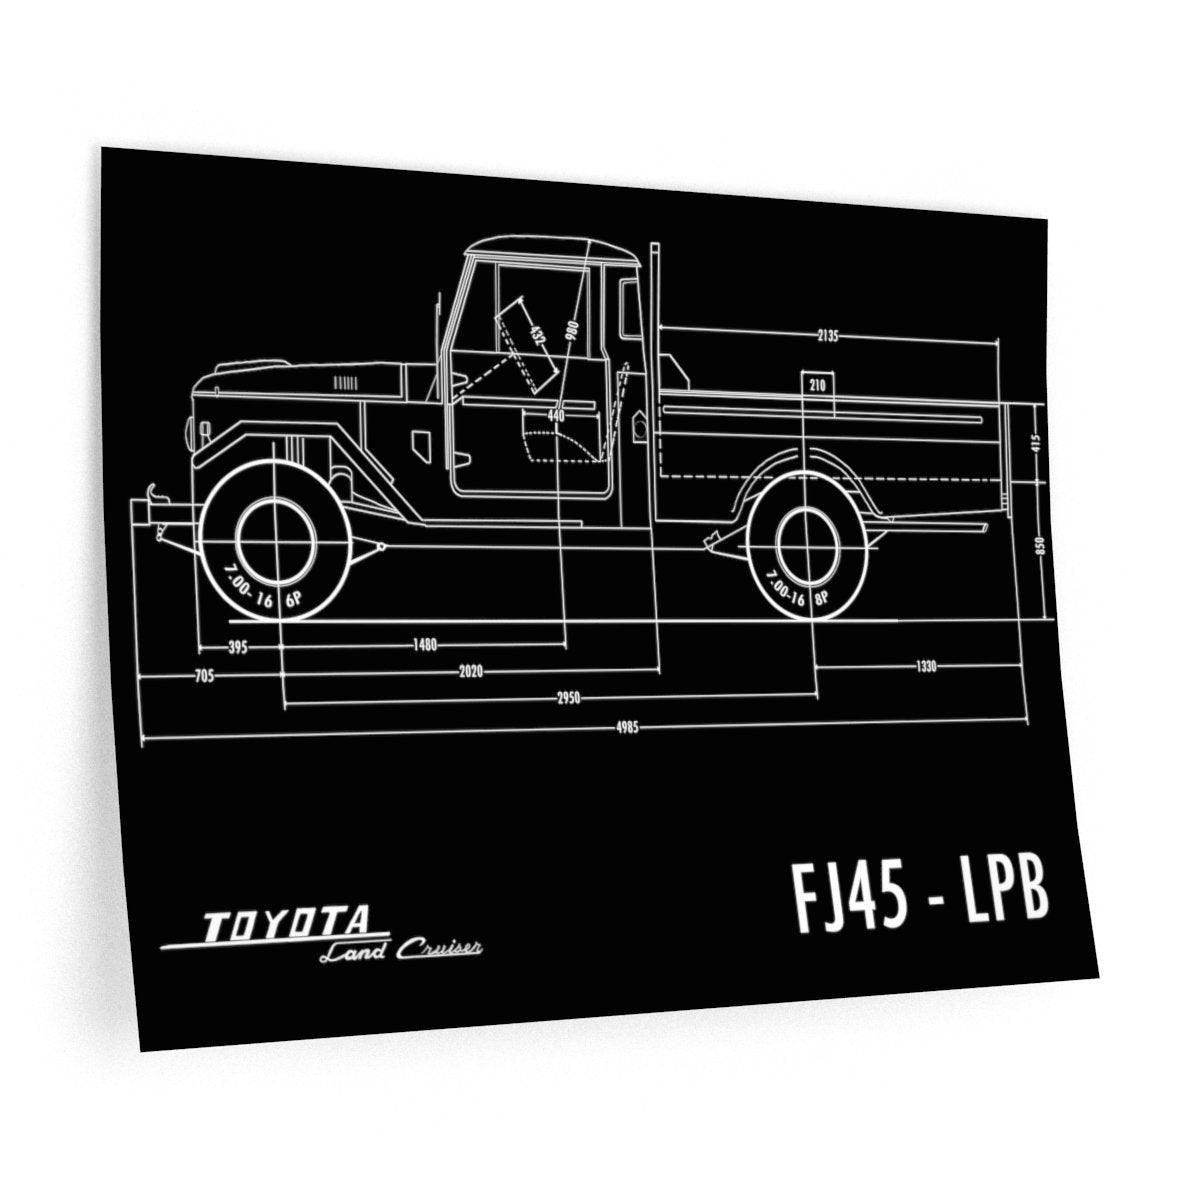 FJ45 Totota Land Cruiser Indoor Wall Decal Gift for Man Cave Reefmonkey